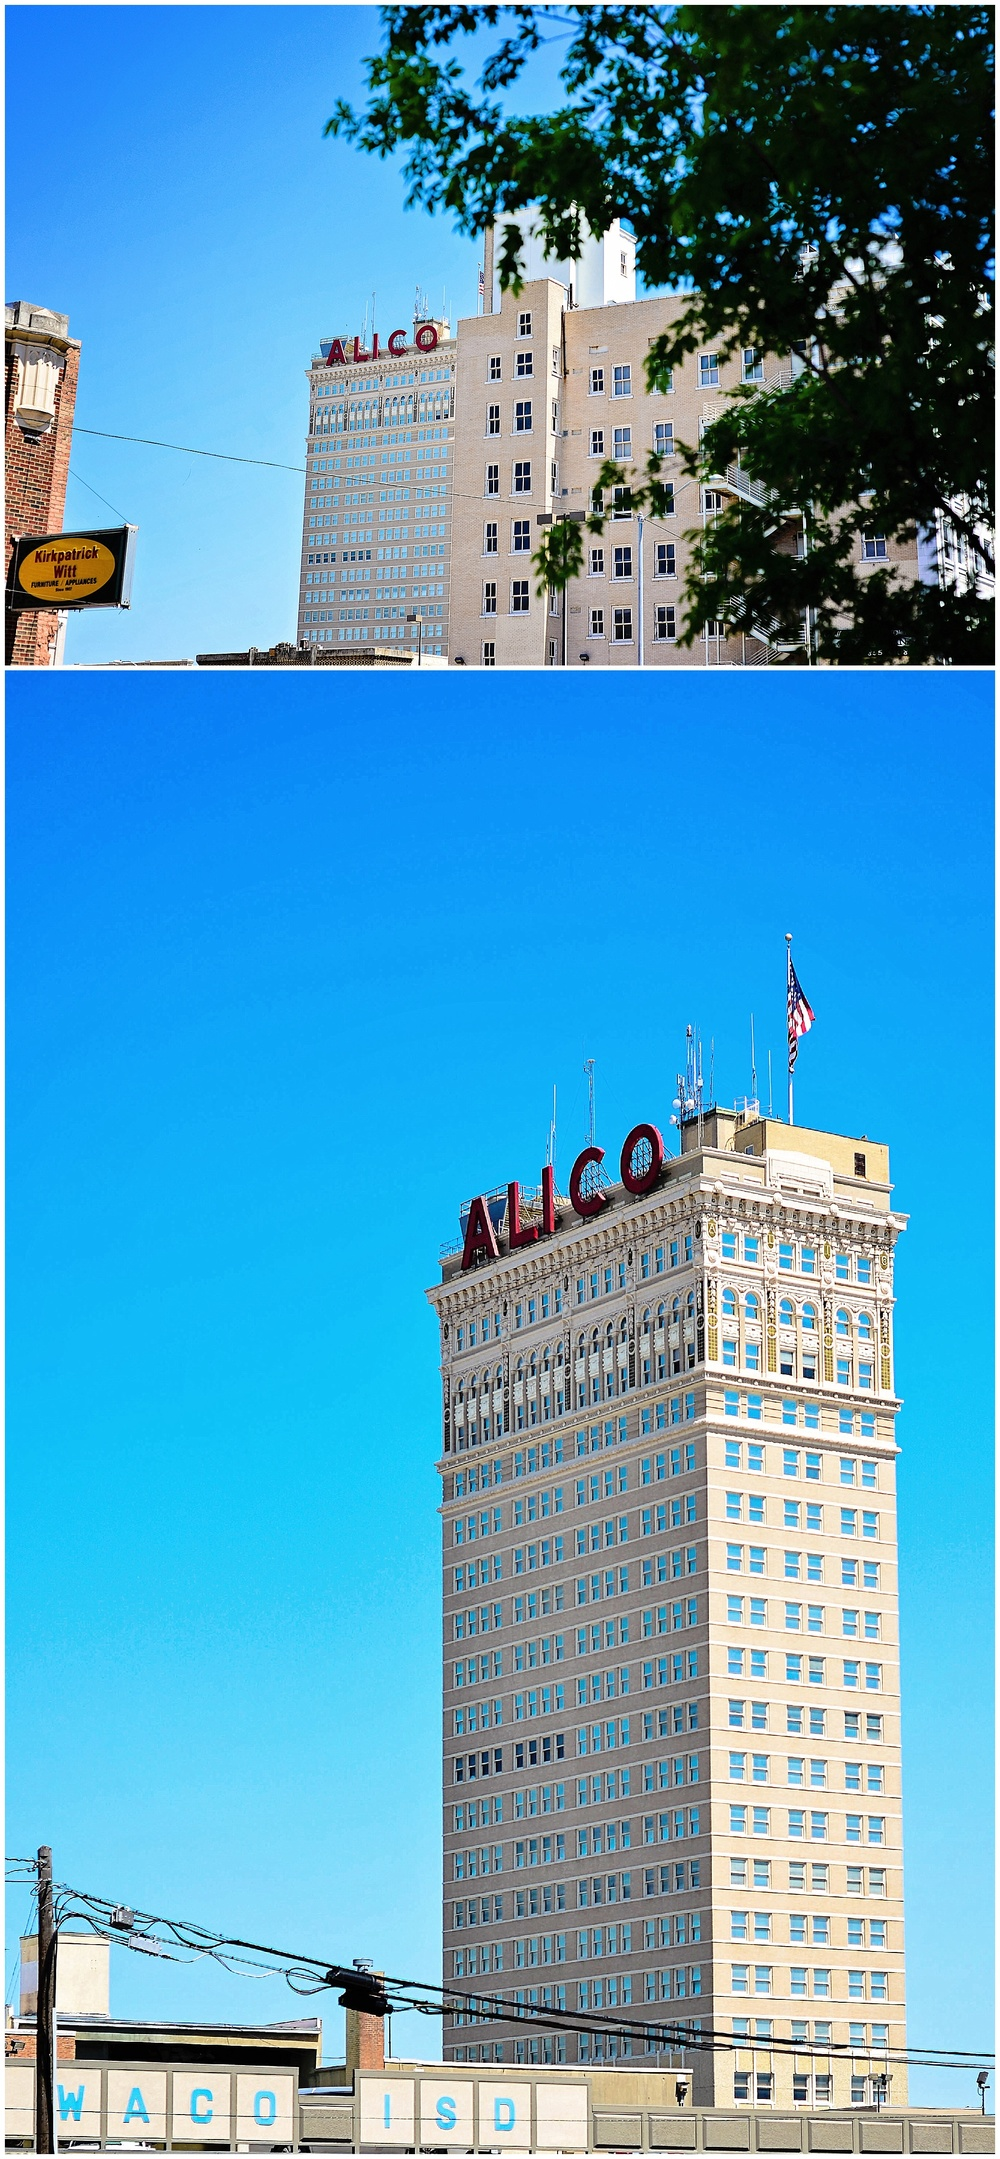 Downtown Waco, The Alico building is one of the telltale signs you are in Waco